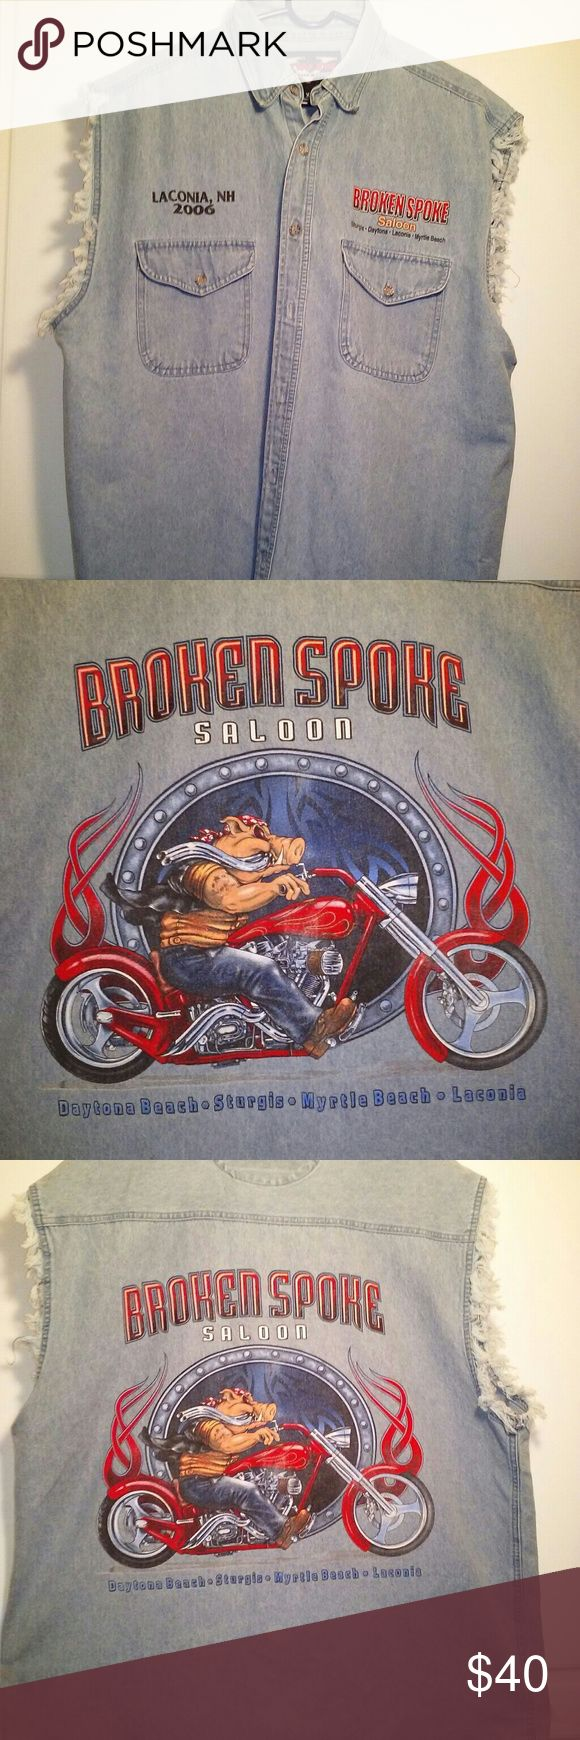 """🔥Twin V Motorcycle Apparel🔥 A """"Broken Spoke Saloon"""" Xl Mens Denim Vest!! Souvenir of Laconia NH-2006.🔥 All Twin V Buttons. Snap Collar. 2 Front Button Pockets. Front Neckline to Hem is 29"""". Arm holes are 11"""" laying Flat. Back Collar to Hem is 33"""". Awesome Condition!!🔥🔥Only Flaw Is Small Fade Spot On Back Of Shirt!( last pic) 🔥For The Motorcycle Enthusiast!!!🔥🔥🔥🔥 Twin V Motorcycle Apparel Jackets & Coats Vests"""